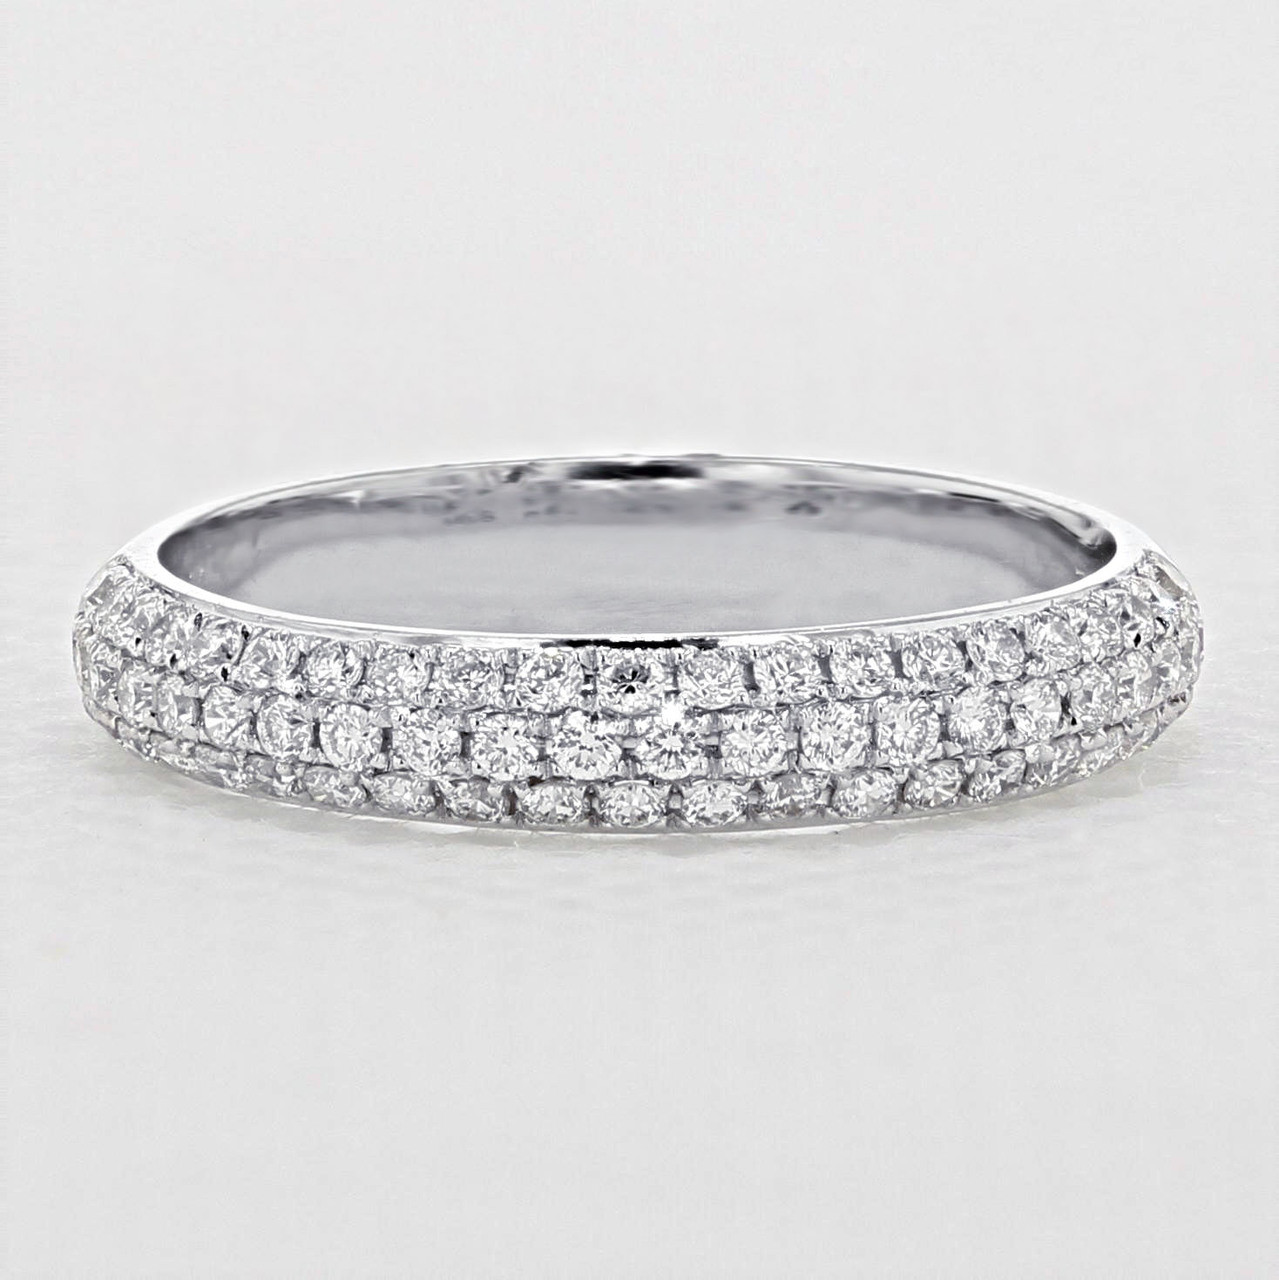 Triple Pavé Set Wedding Band | LB164 | Icing On The Ring